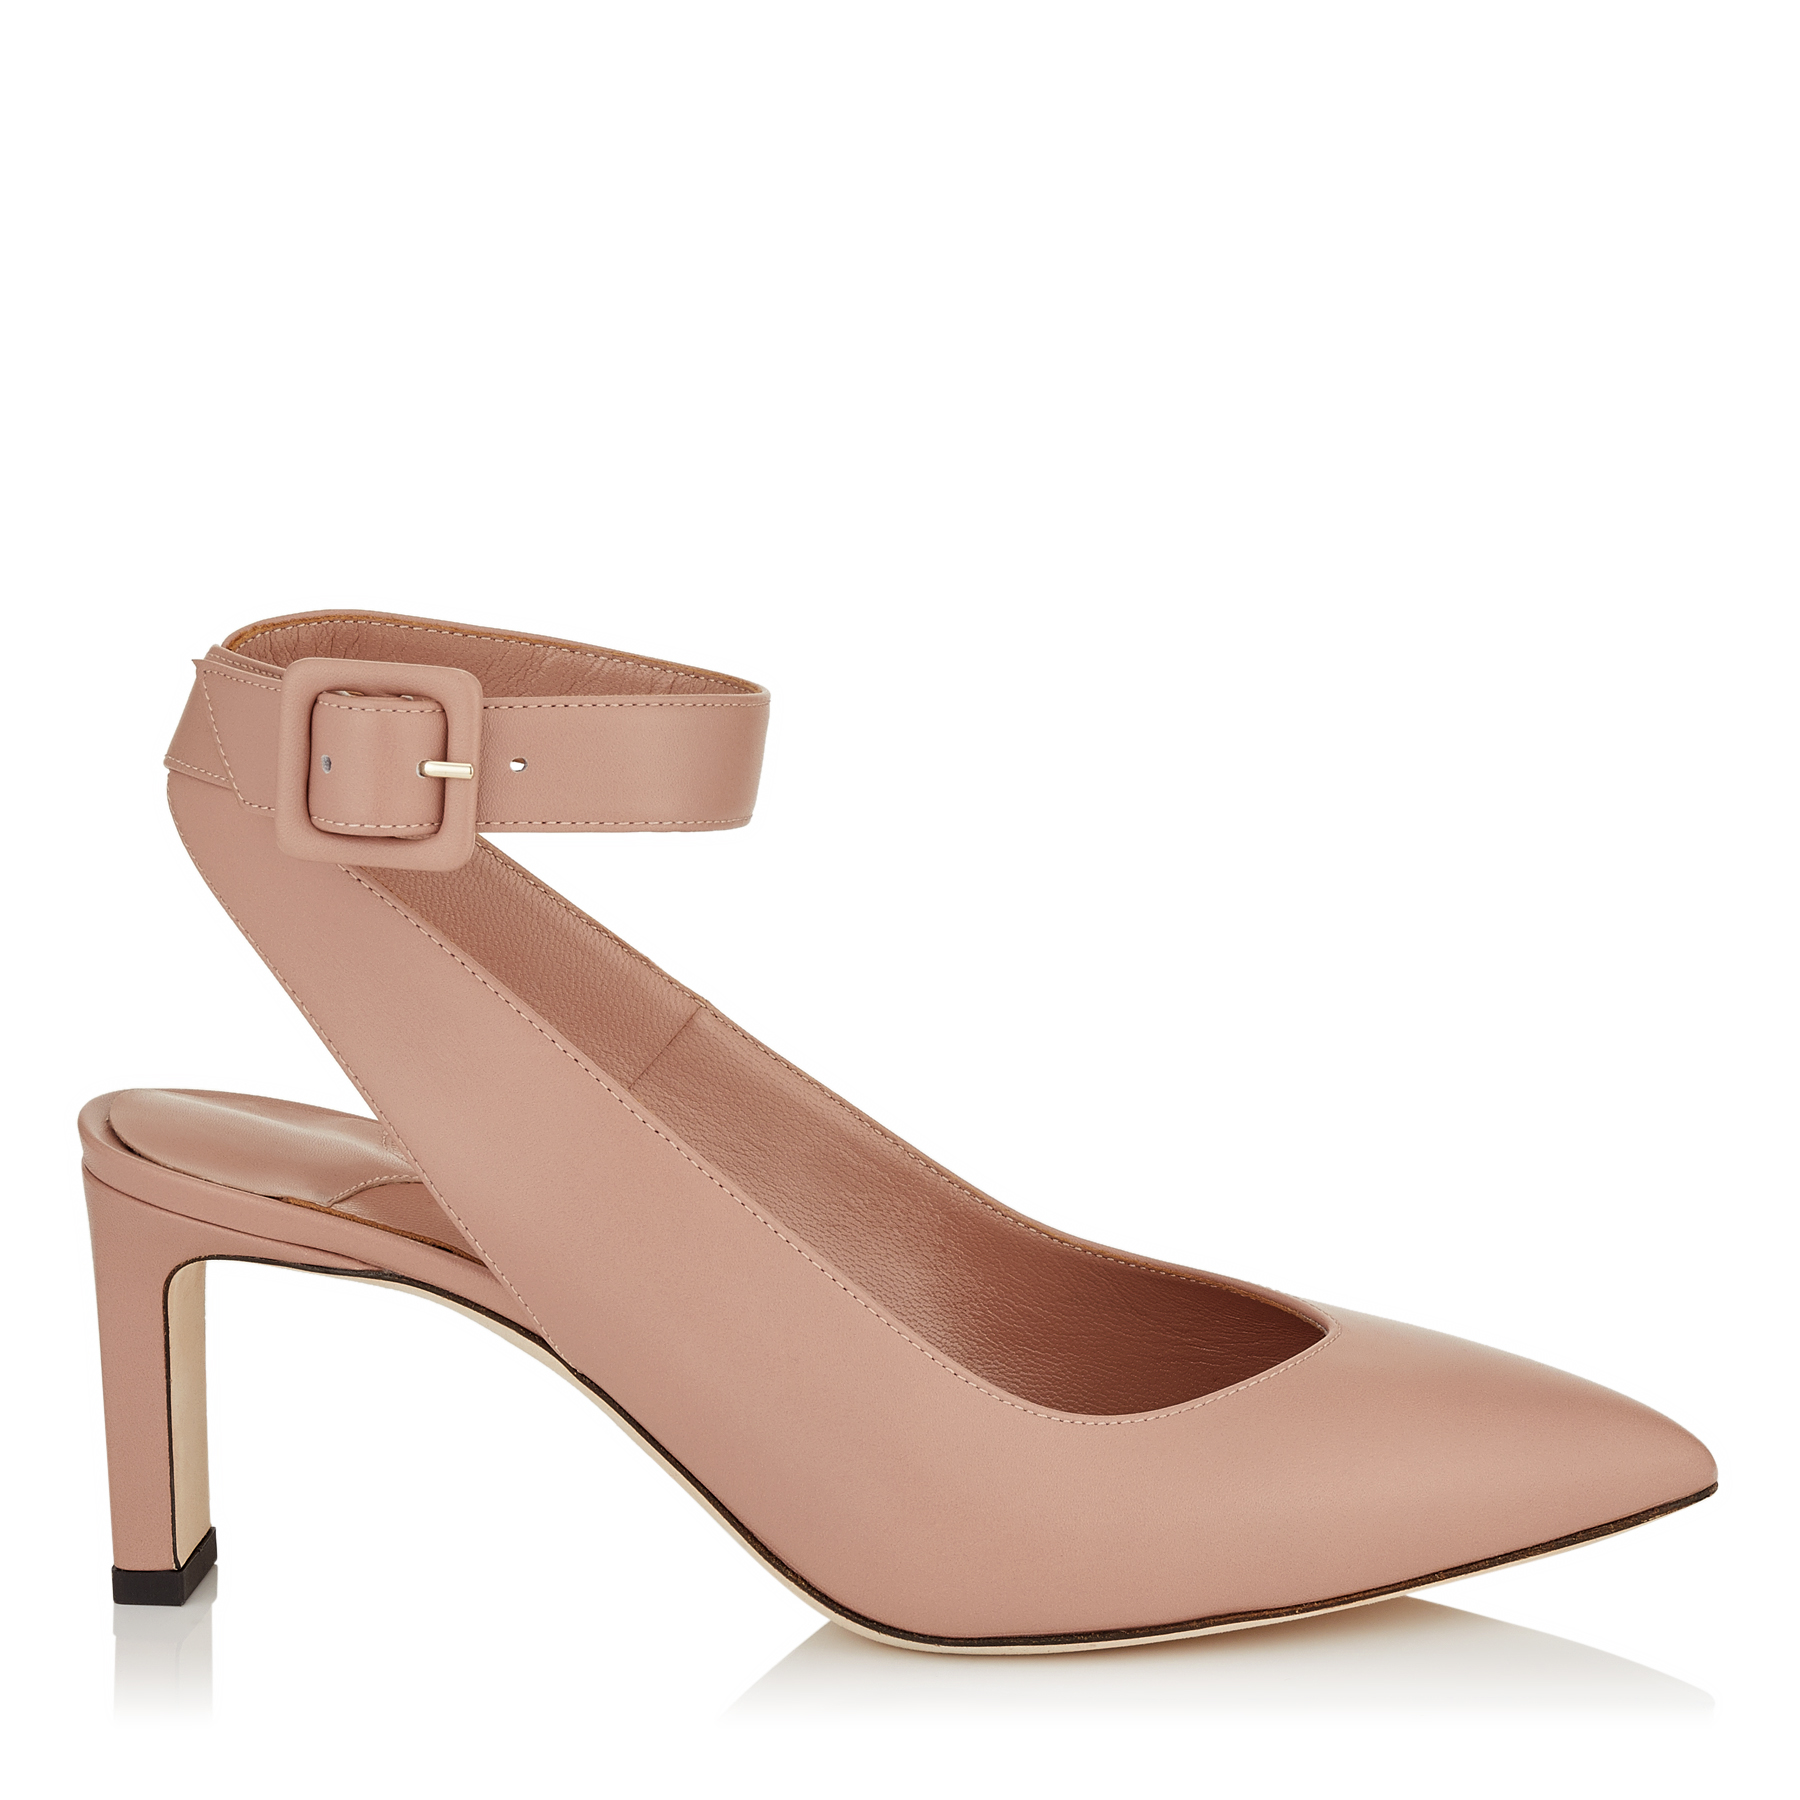 LOU 65 Ballet Pink Shiny Smooth Leather Pumps by Jimmy Choo